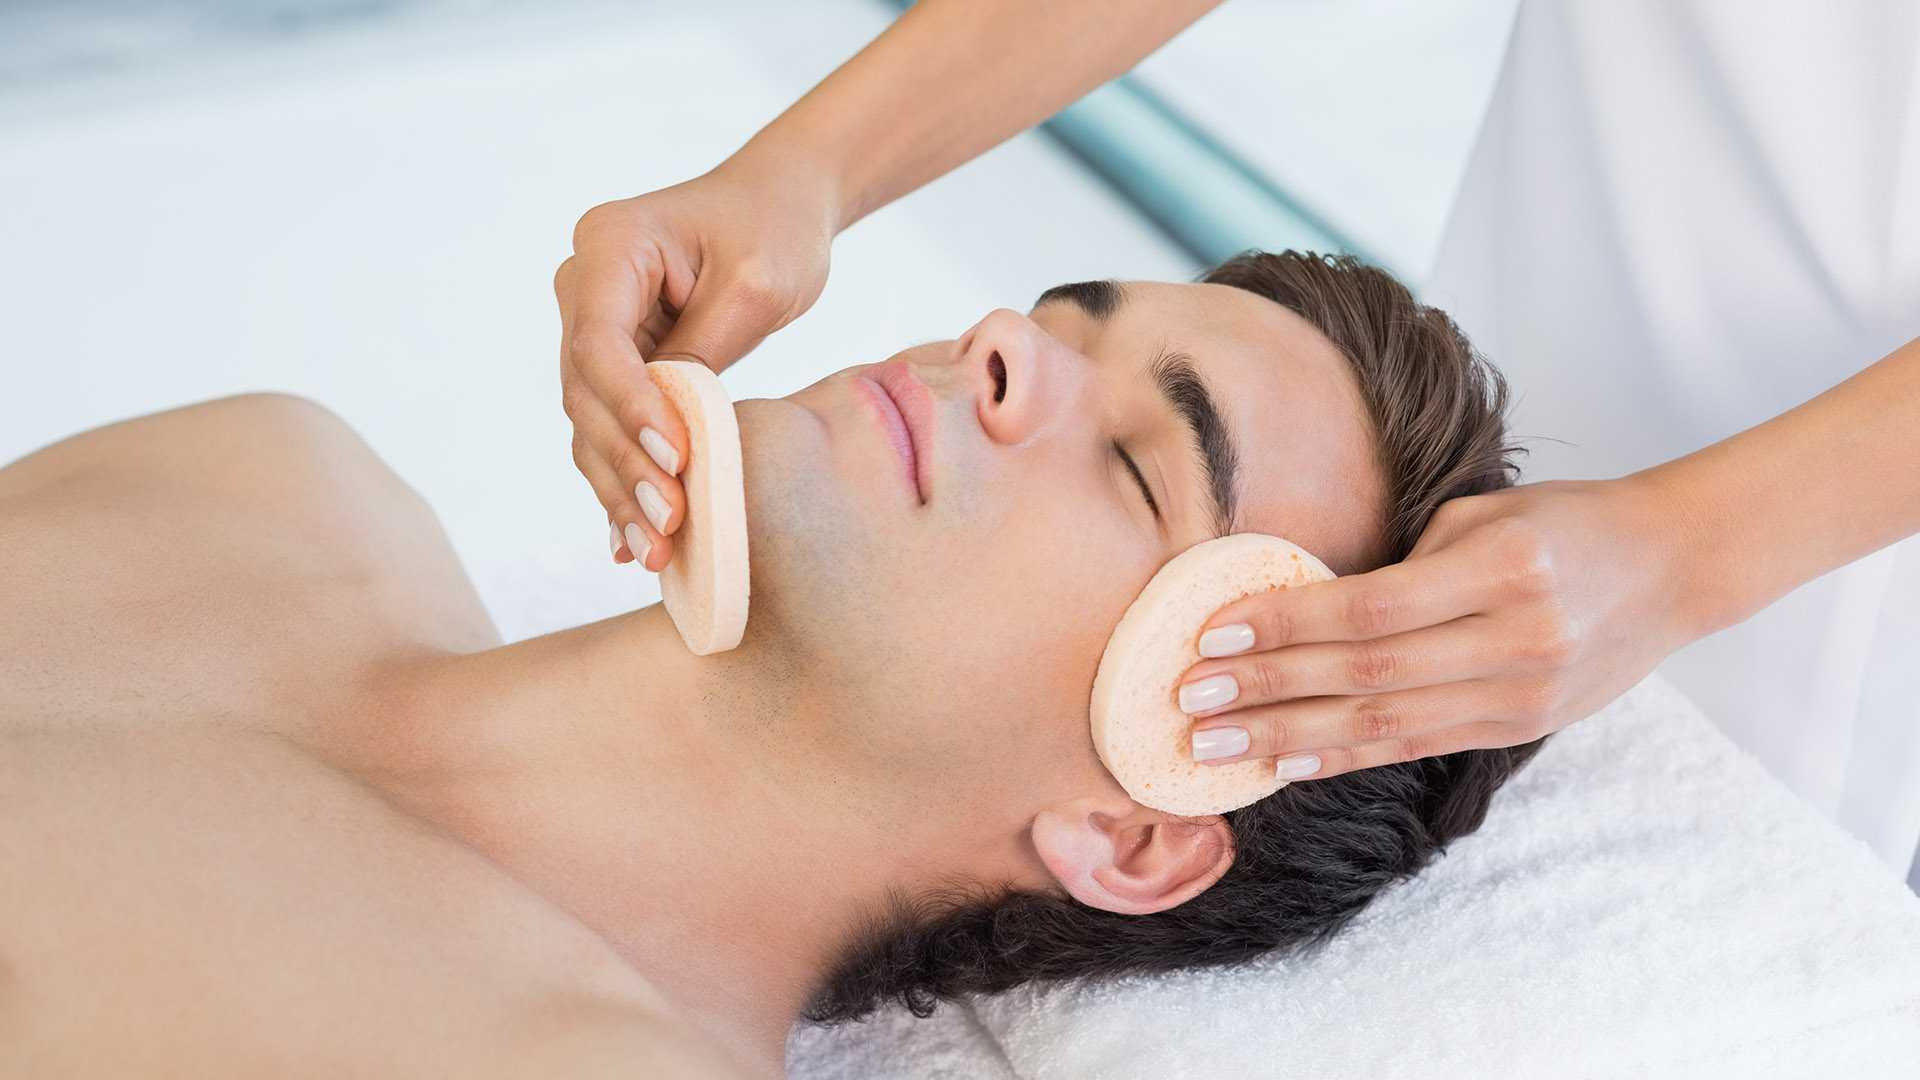 Getting a men's facial: what to expect